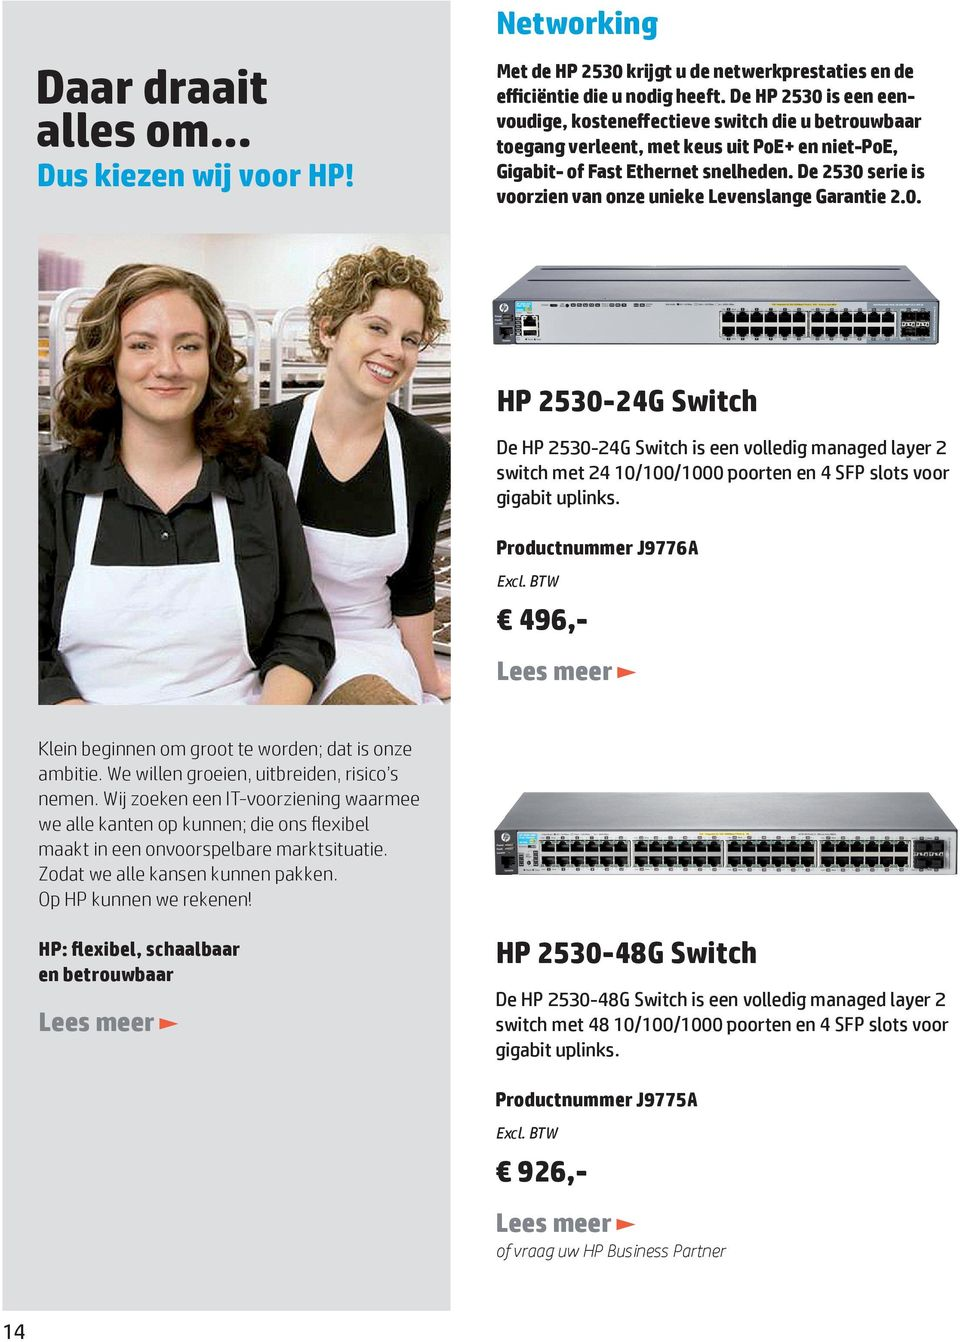 De 2530 serie is voorzien van onze unieke Levenslange Garantie 2.0. HP 2530-24G Switch De HP 2530-24G Switch is een volledig managed layer 2 switch met 24 10/100/1000 poorten en 4 SFP slots voor gigabit uplinks.